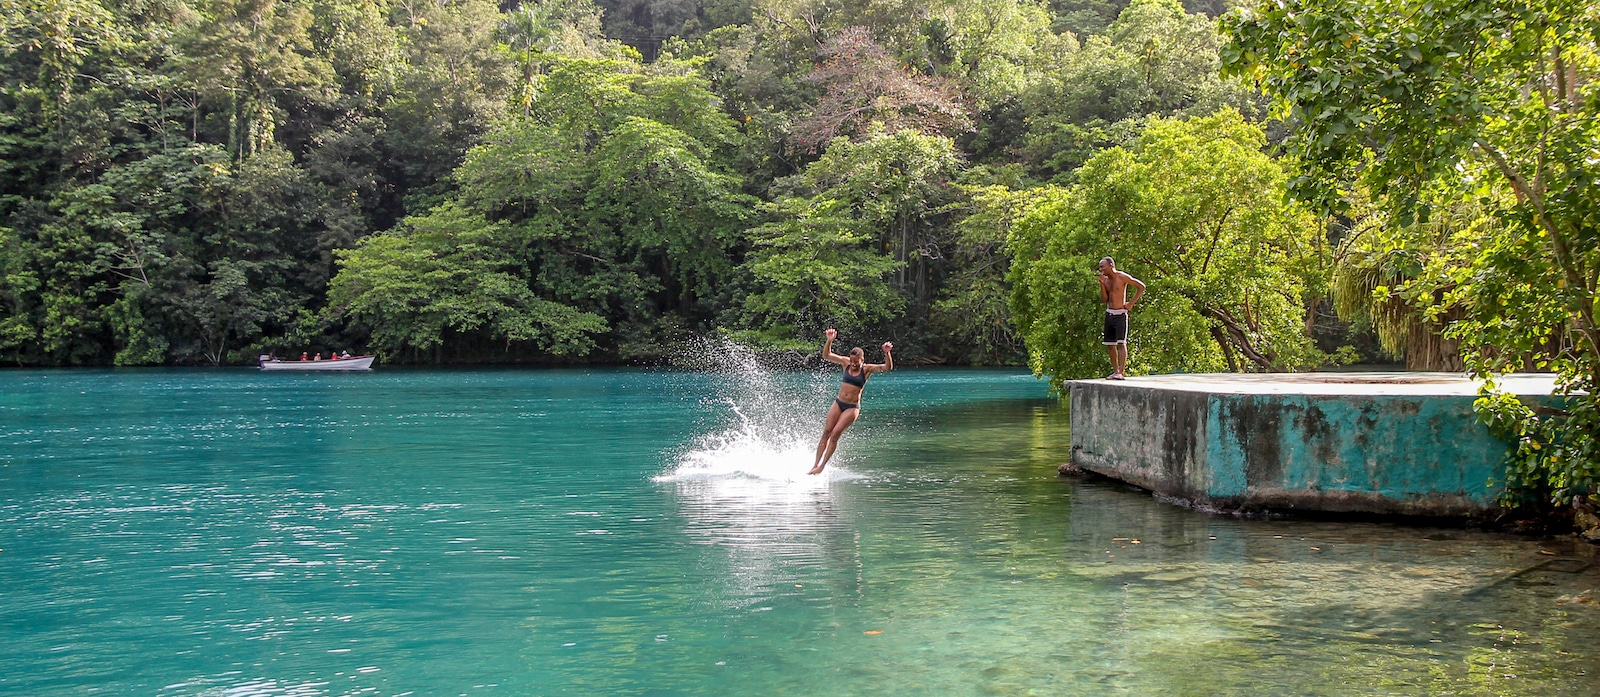 Blue Lagoon in Port Antonio, Jamaica